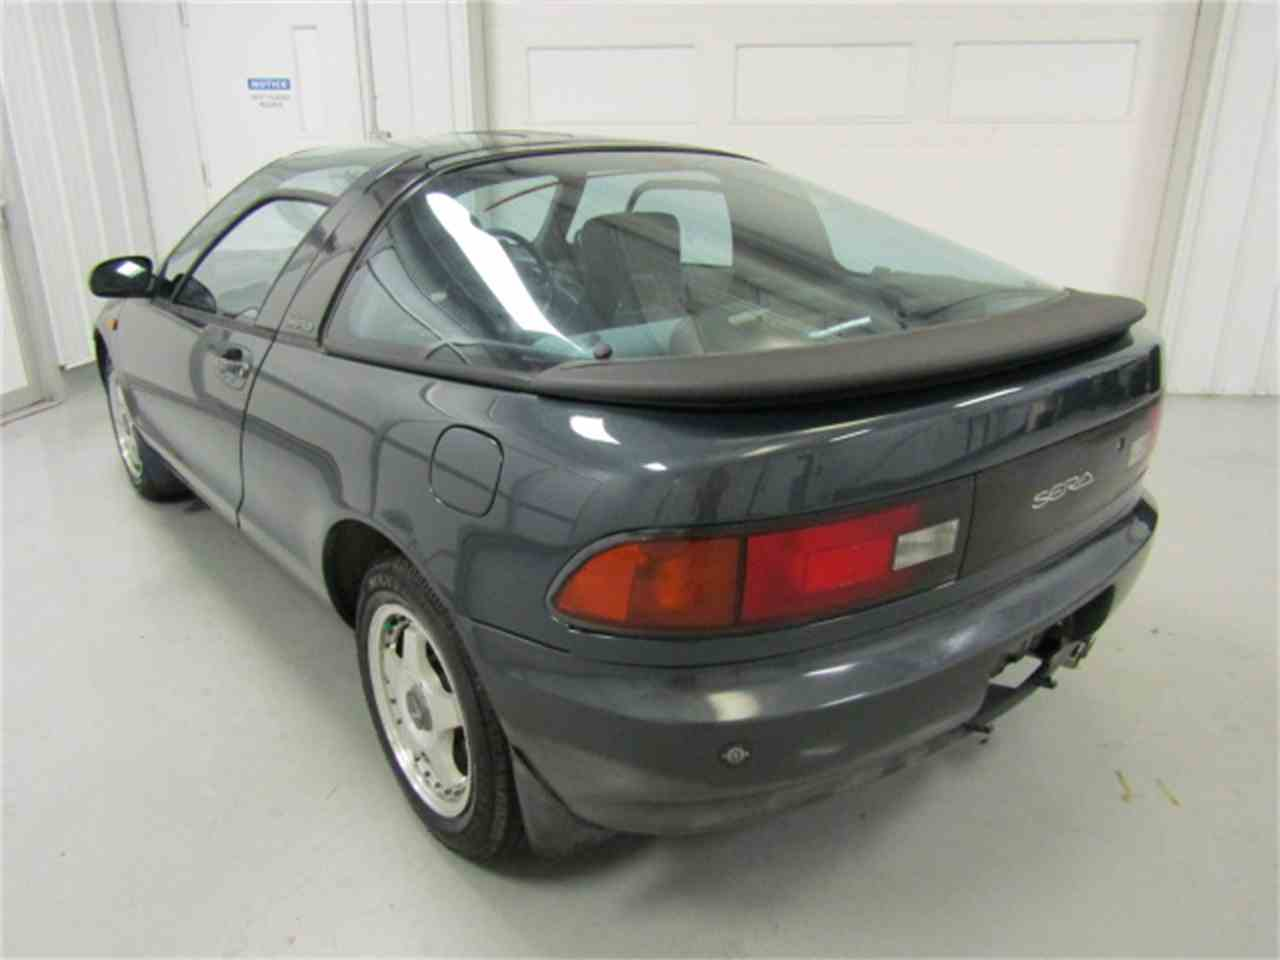 Large Picture of 1990 Toyota Sera located in Christiansburg Virginia - $8,990.00 Offered by Duncan Imports & Classic Cars - JLBZ